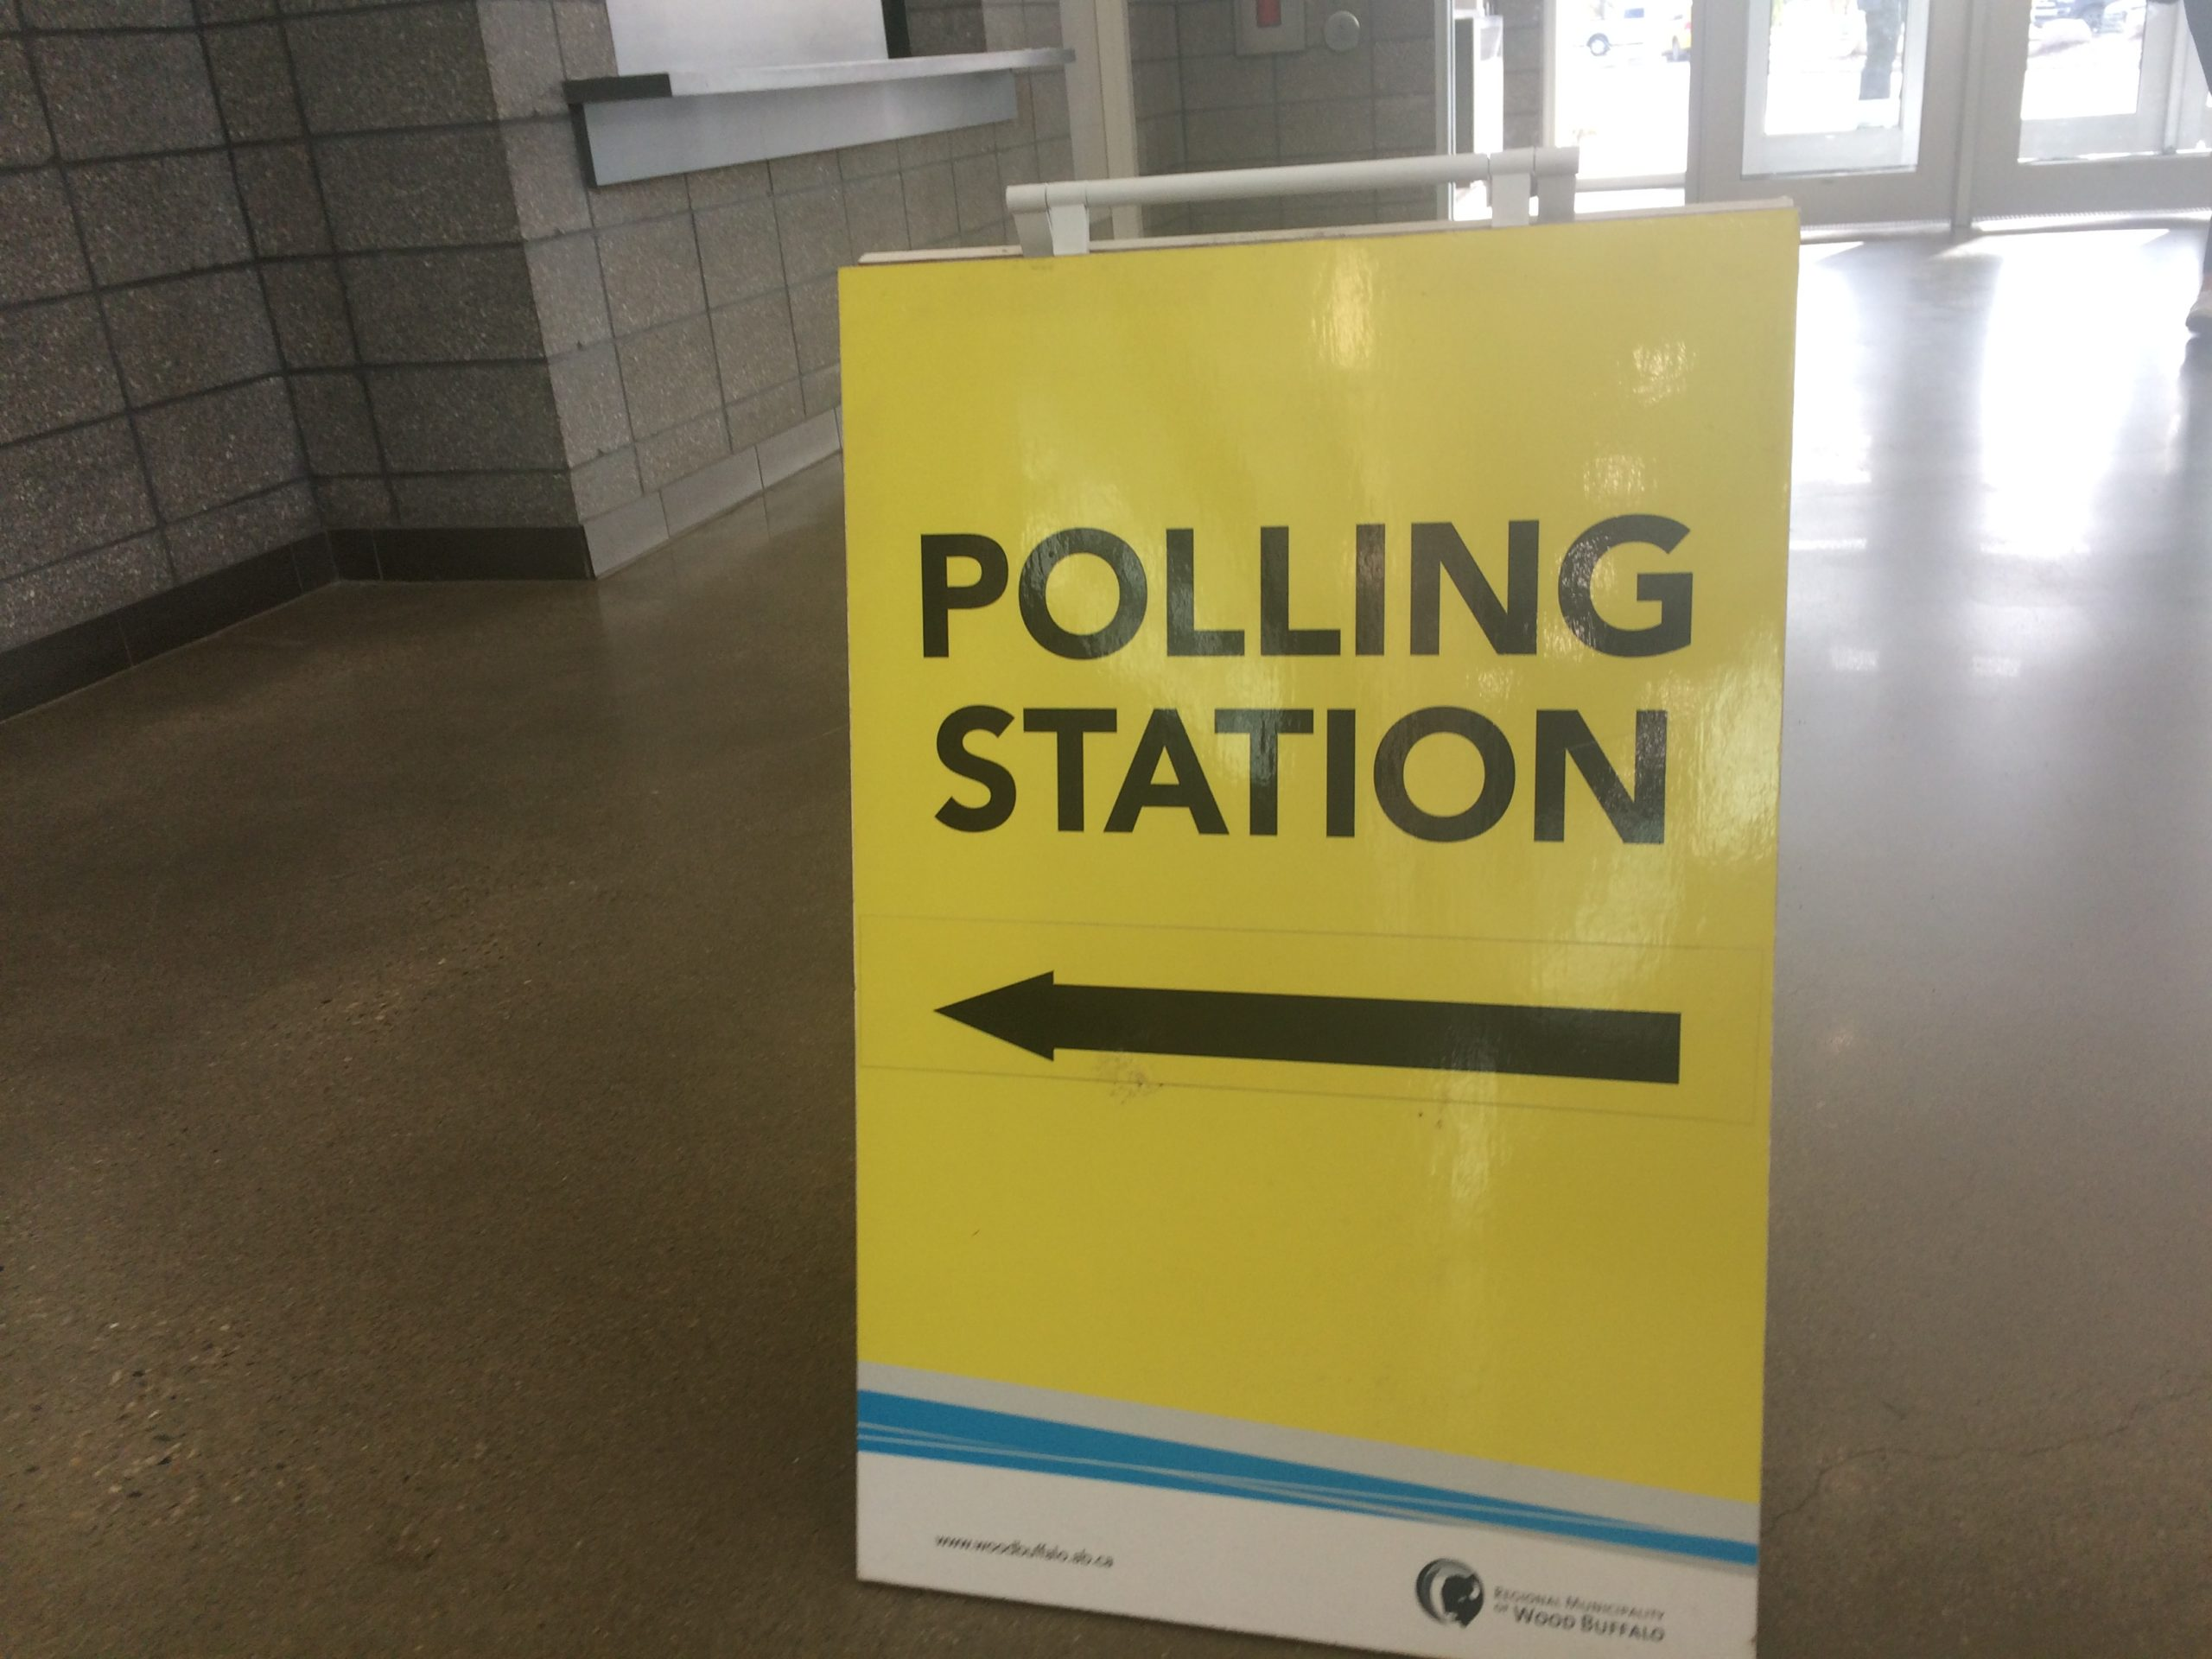 Municipal Election Saw Highest Voter Turnout In Wood Buffalo History